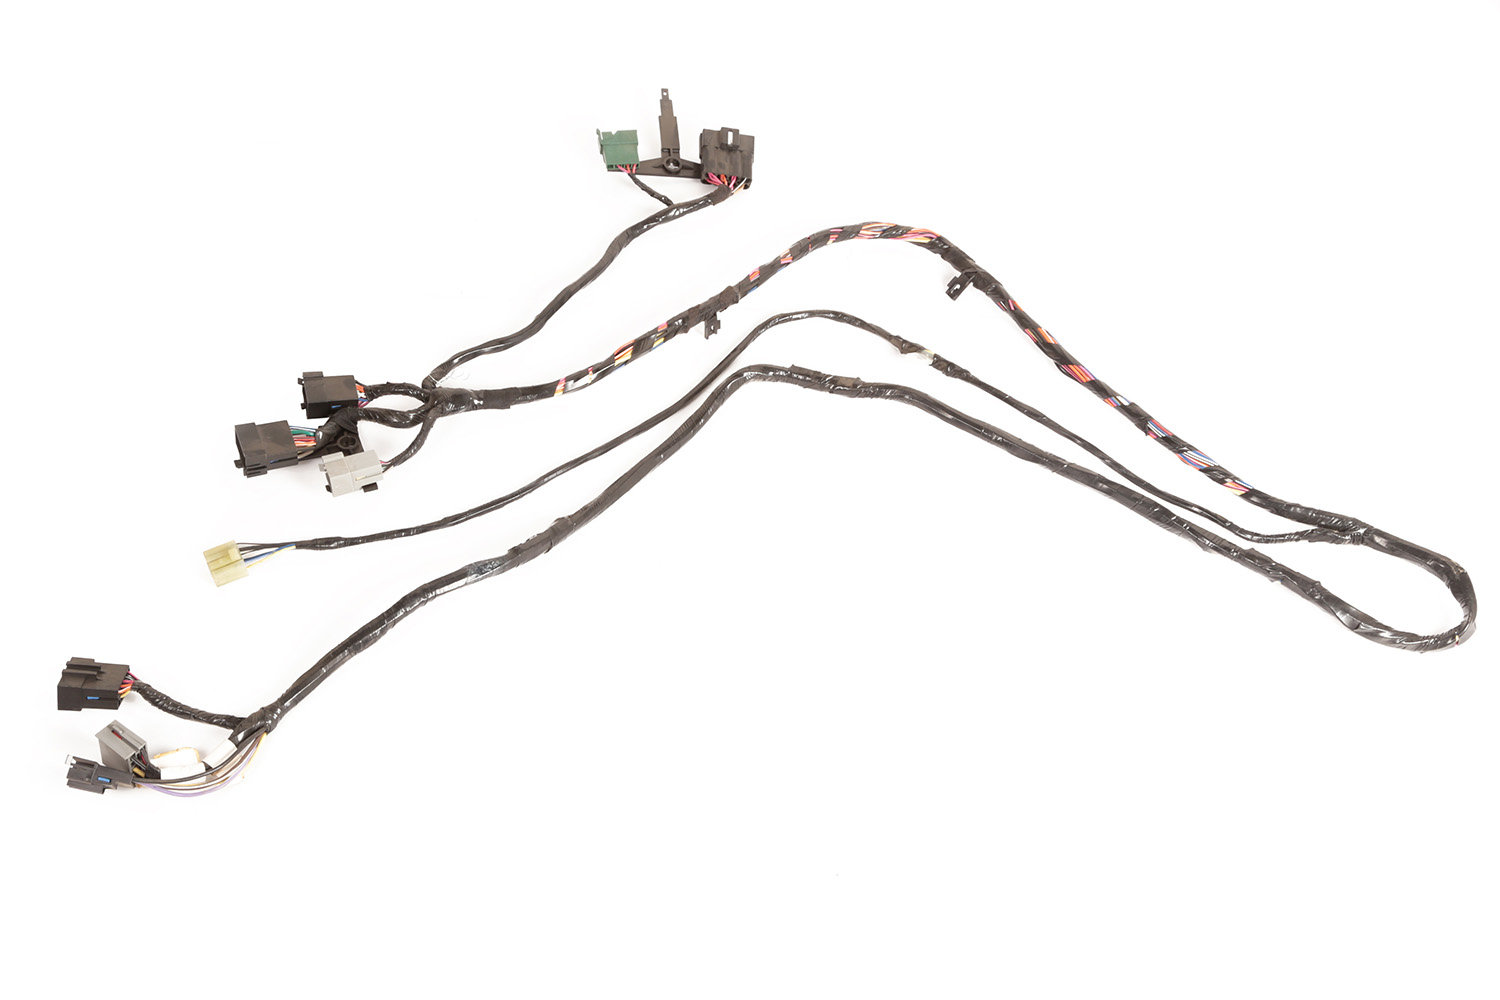 OMIX 56009881 Wiring Assembly for 1996 Jeep Cherokee XJ